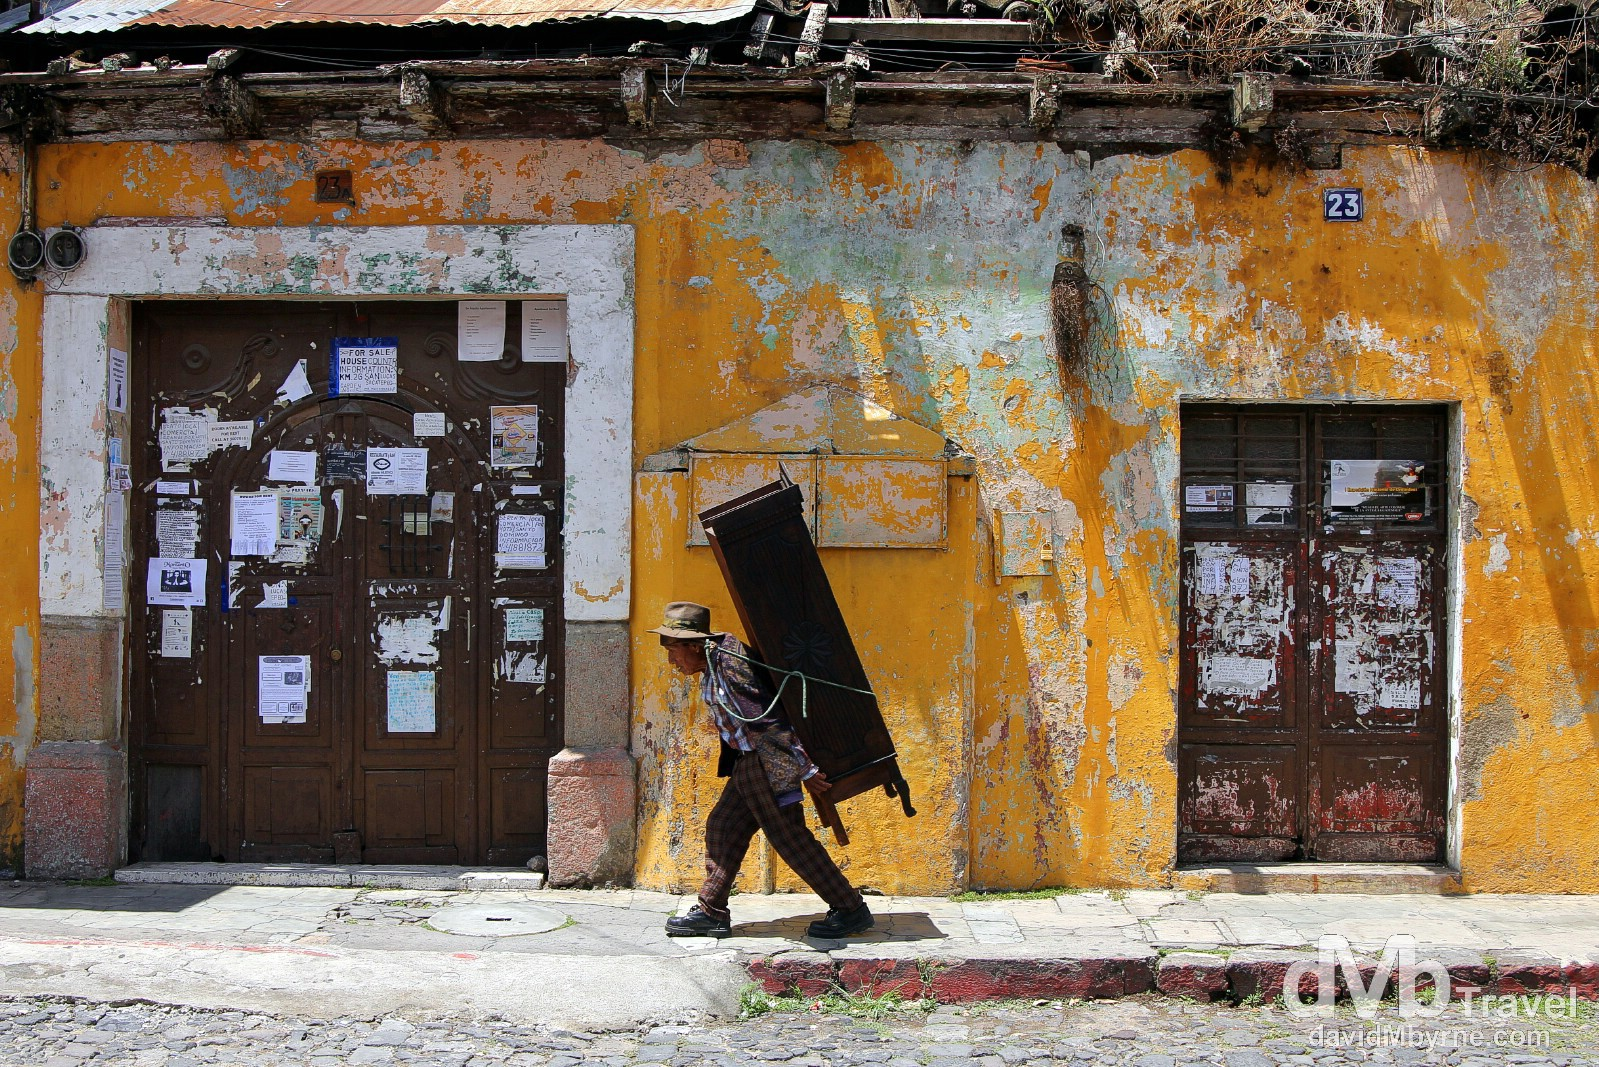 Delivery not included. Antigua, Guatemala. May 25th 2013.